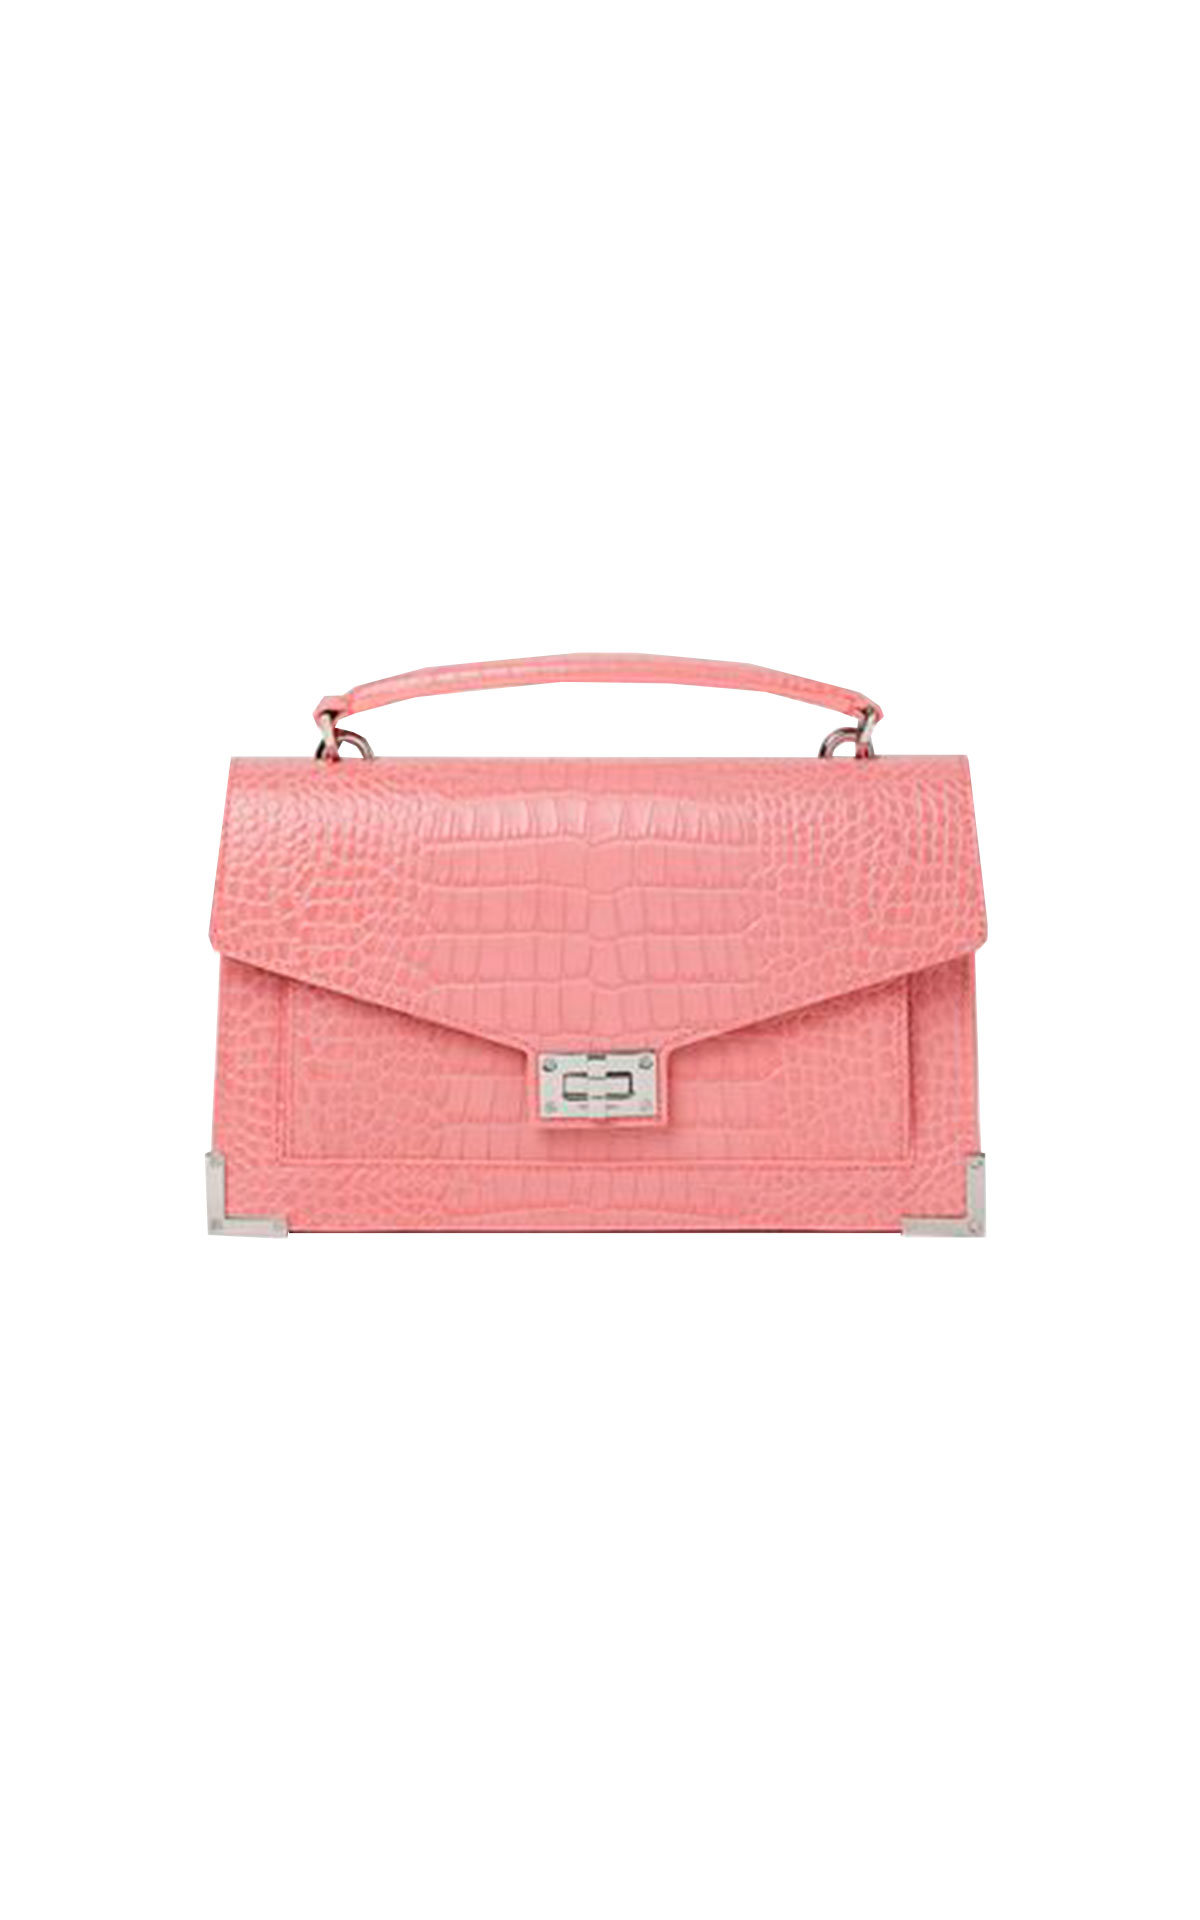 Pink Emily bag The Kooples